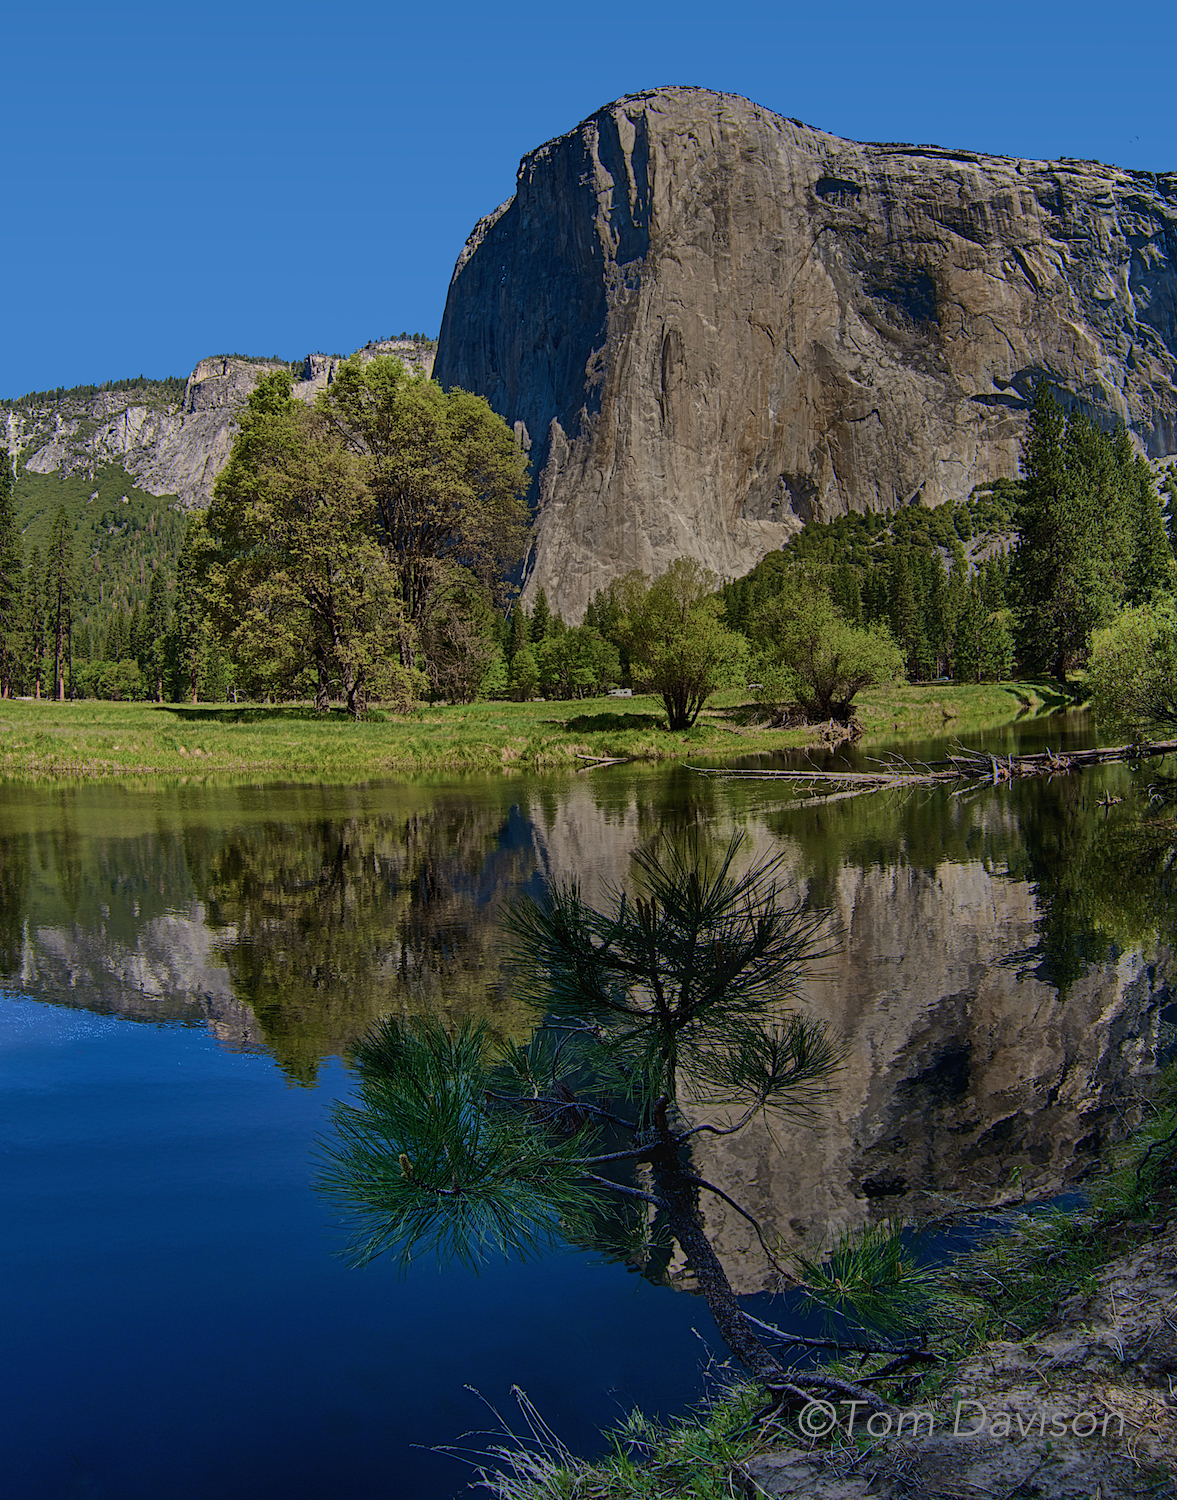 El Capitan from across the Merced River.  Tom looked a long time for just the right foreground in place.  That is another conundrum in photographing Yosemite, to make a shot special the iconic part has to be framed in an interesting way.  A huge granite rock like El Capitan gets old real quick unless we change the window you see it through.